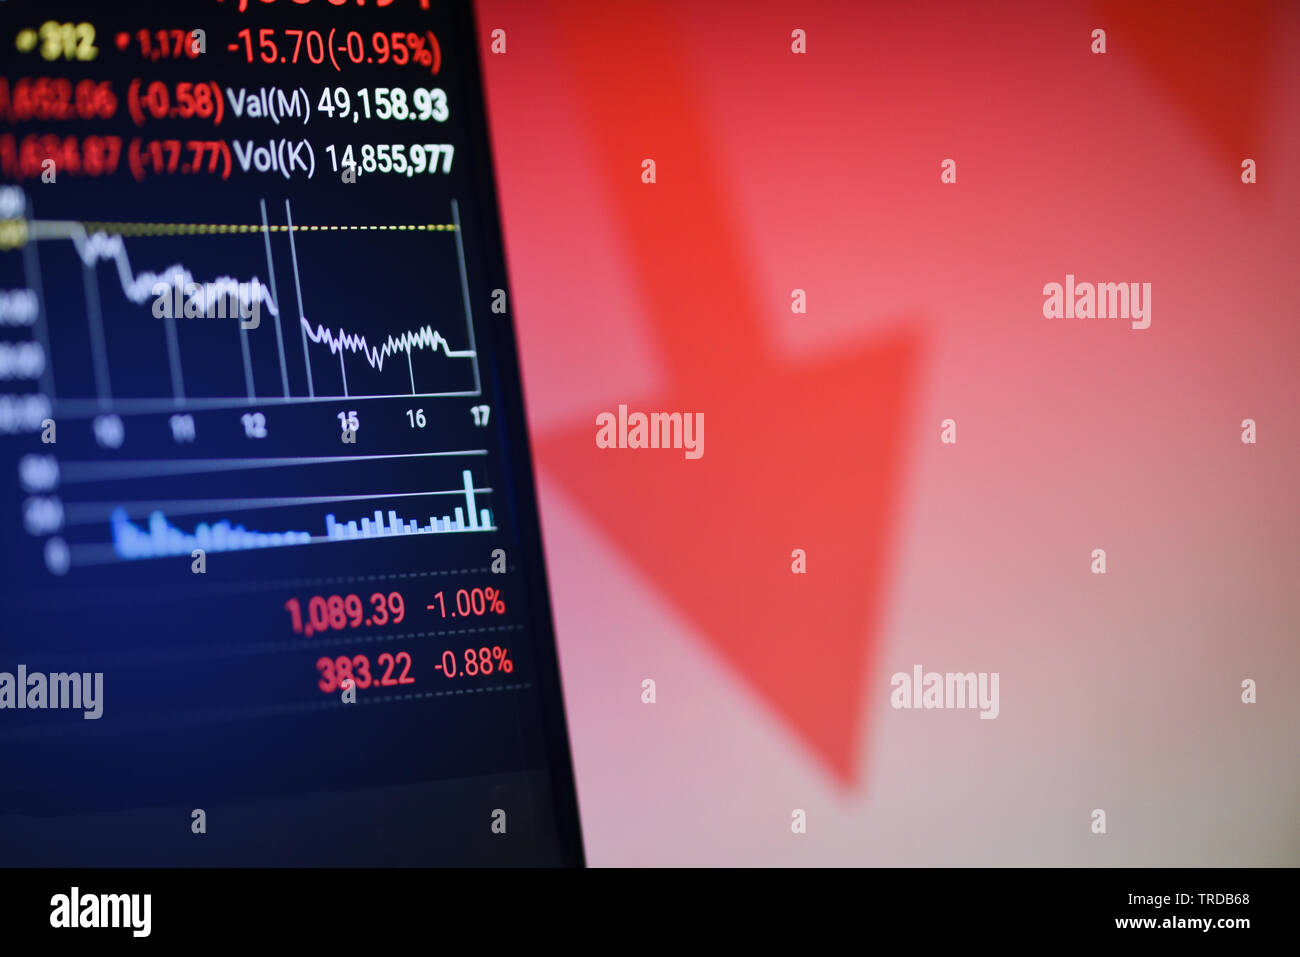 Stock crisis red price drop arrow down chart fall on mobile screen / Stock market exchange analysis graph business and finance money losing moving eco - Stock Image